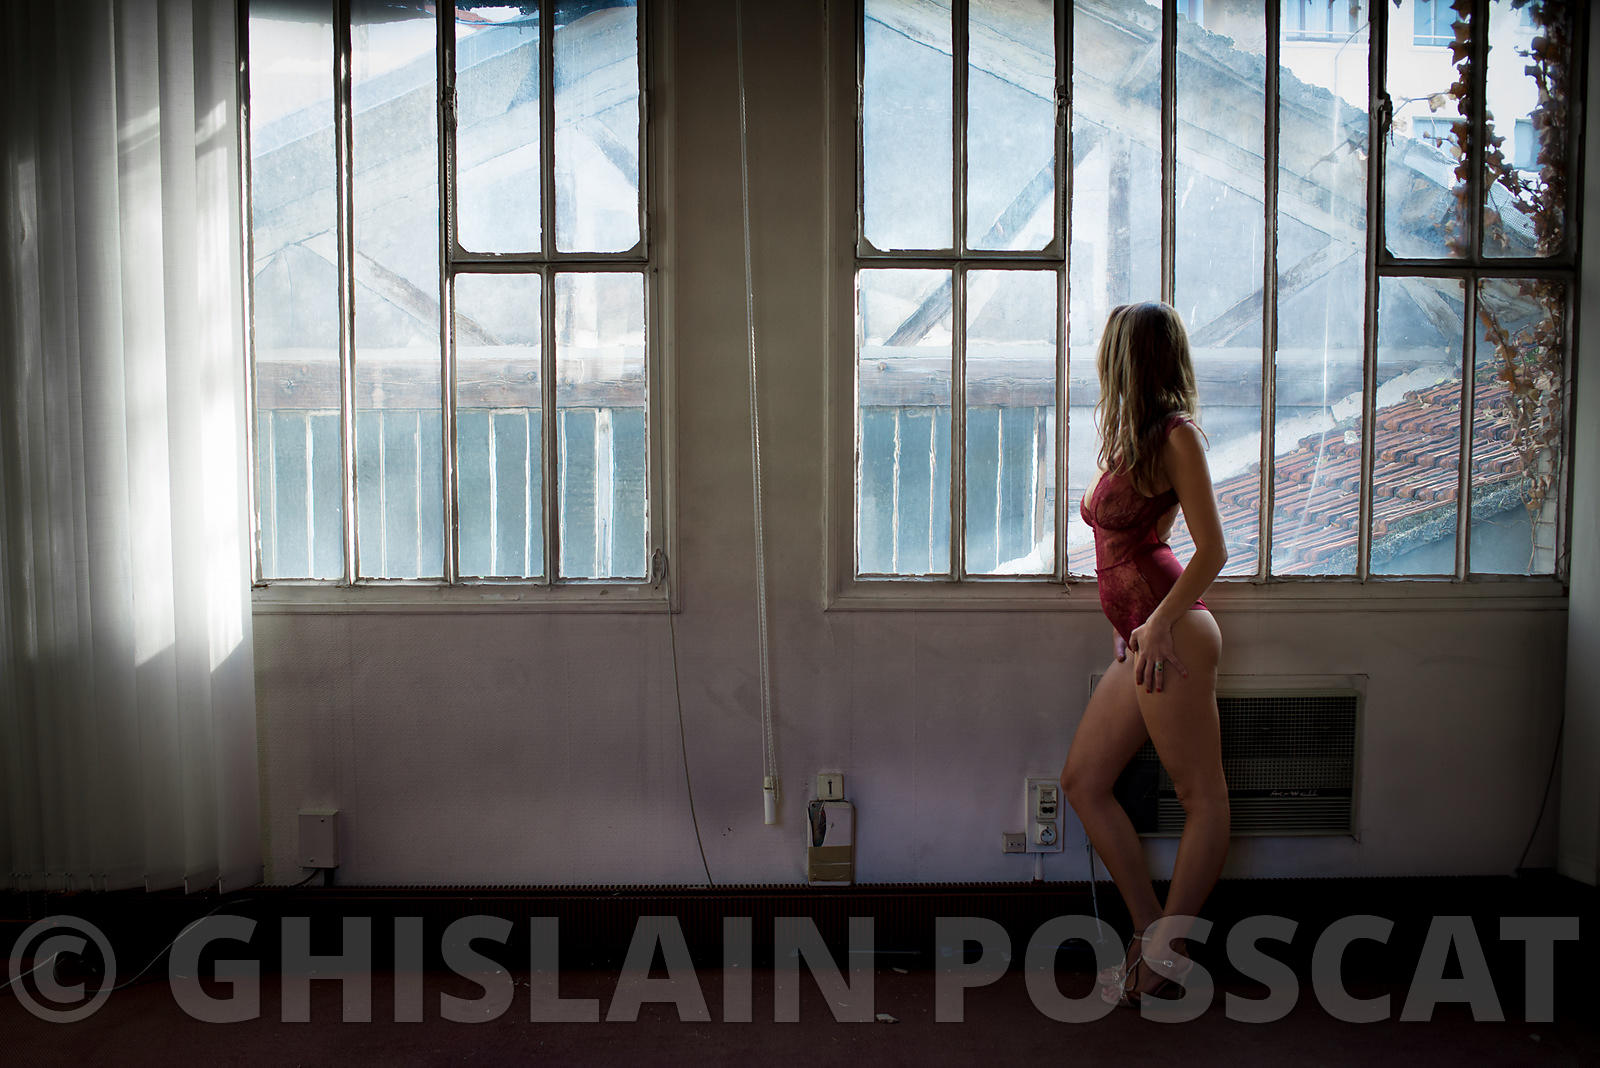 Sexy pictures - glamour woman underwear watching a window urbex